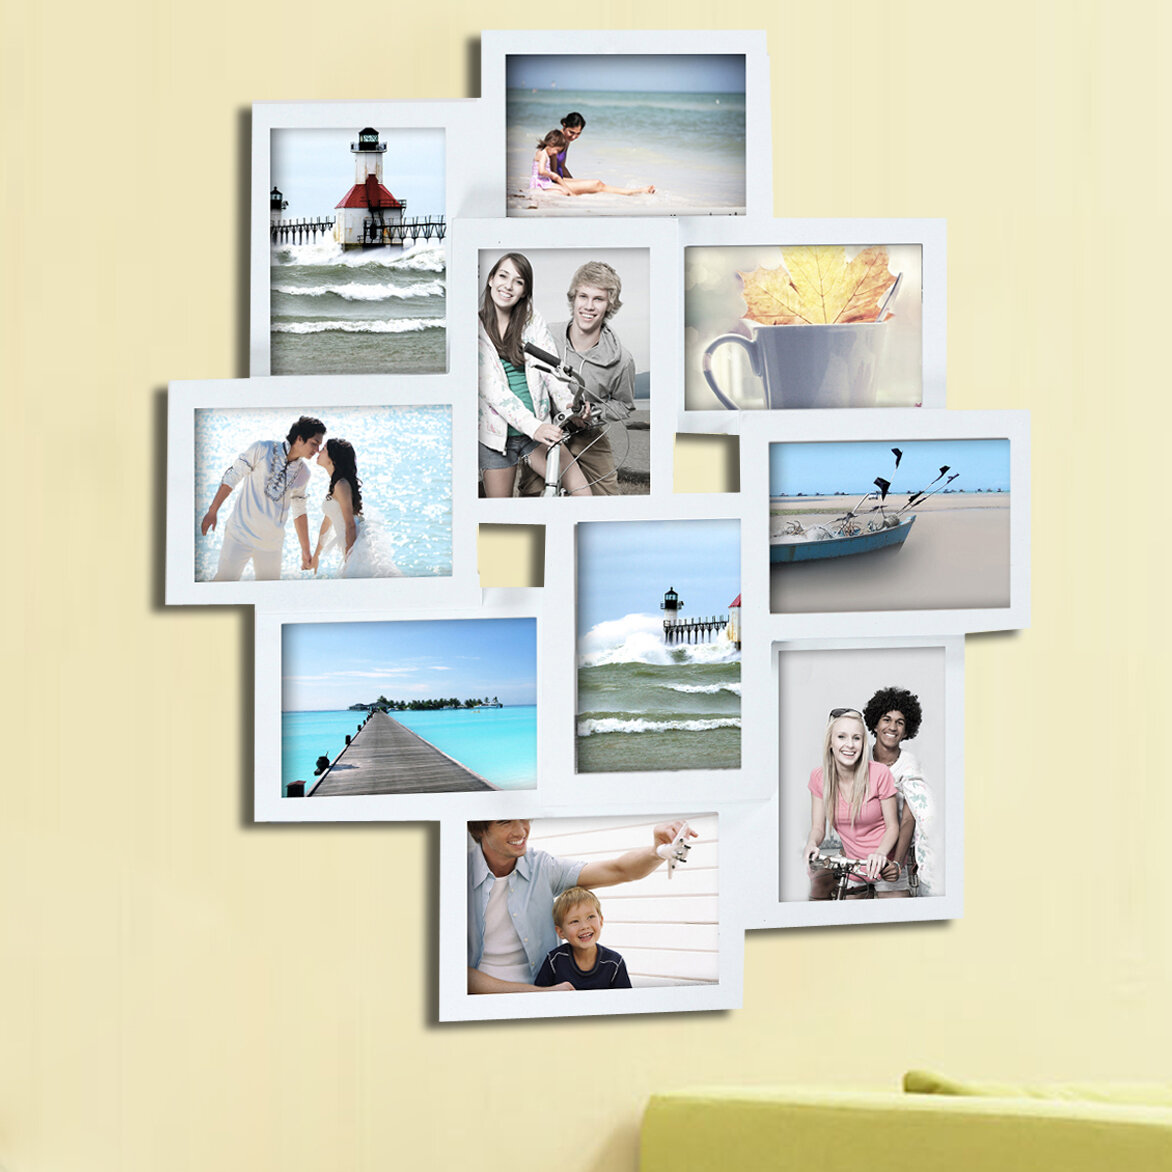 Pilcher 10 opening collage picture frame reviews birch lane jeuxipadfo Image collections